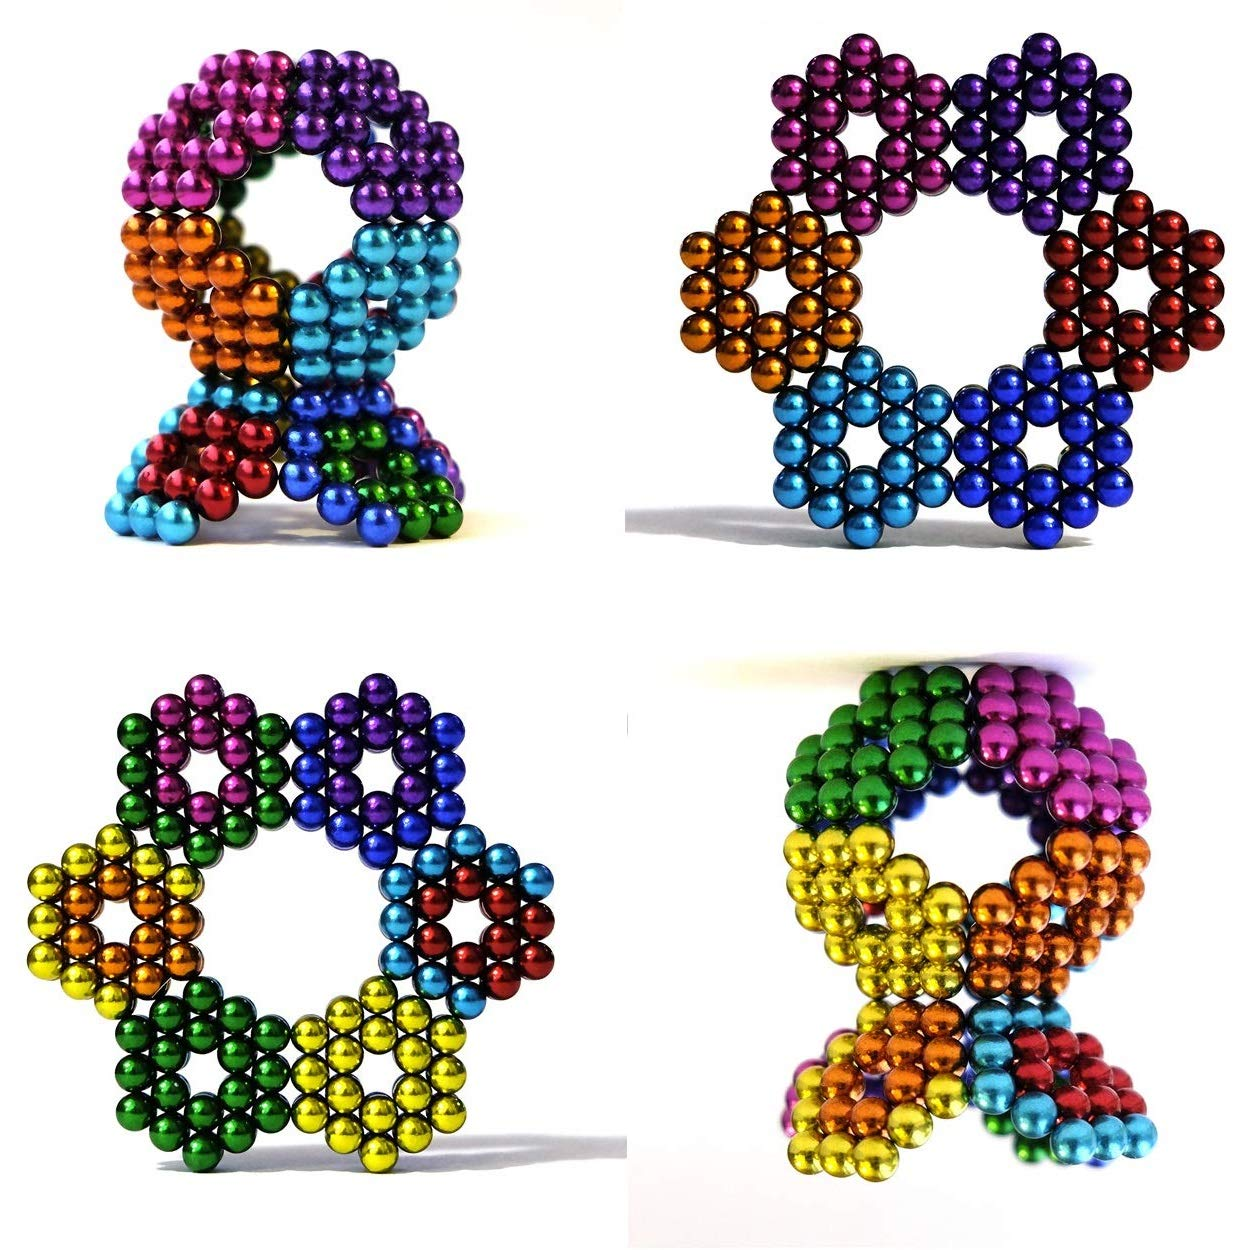 6 Colors 216 Pieces Aomeiter 5MM BallsToys Sculpture Building Blocks Fidget Cube Stem Gift for Intellectual Development Office Toy Stress Relief Gift for Teens and Magnetic Blocks for Adult by JZKJ